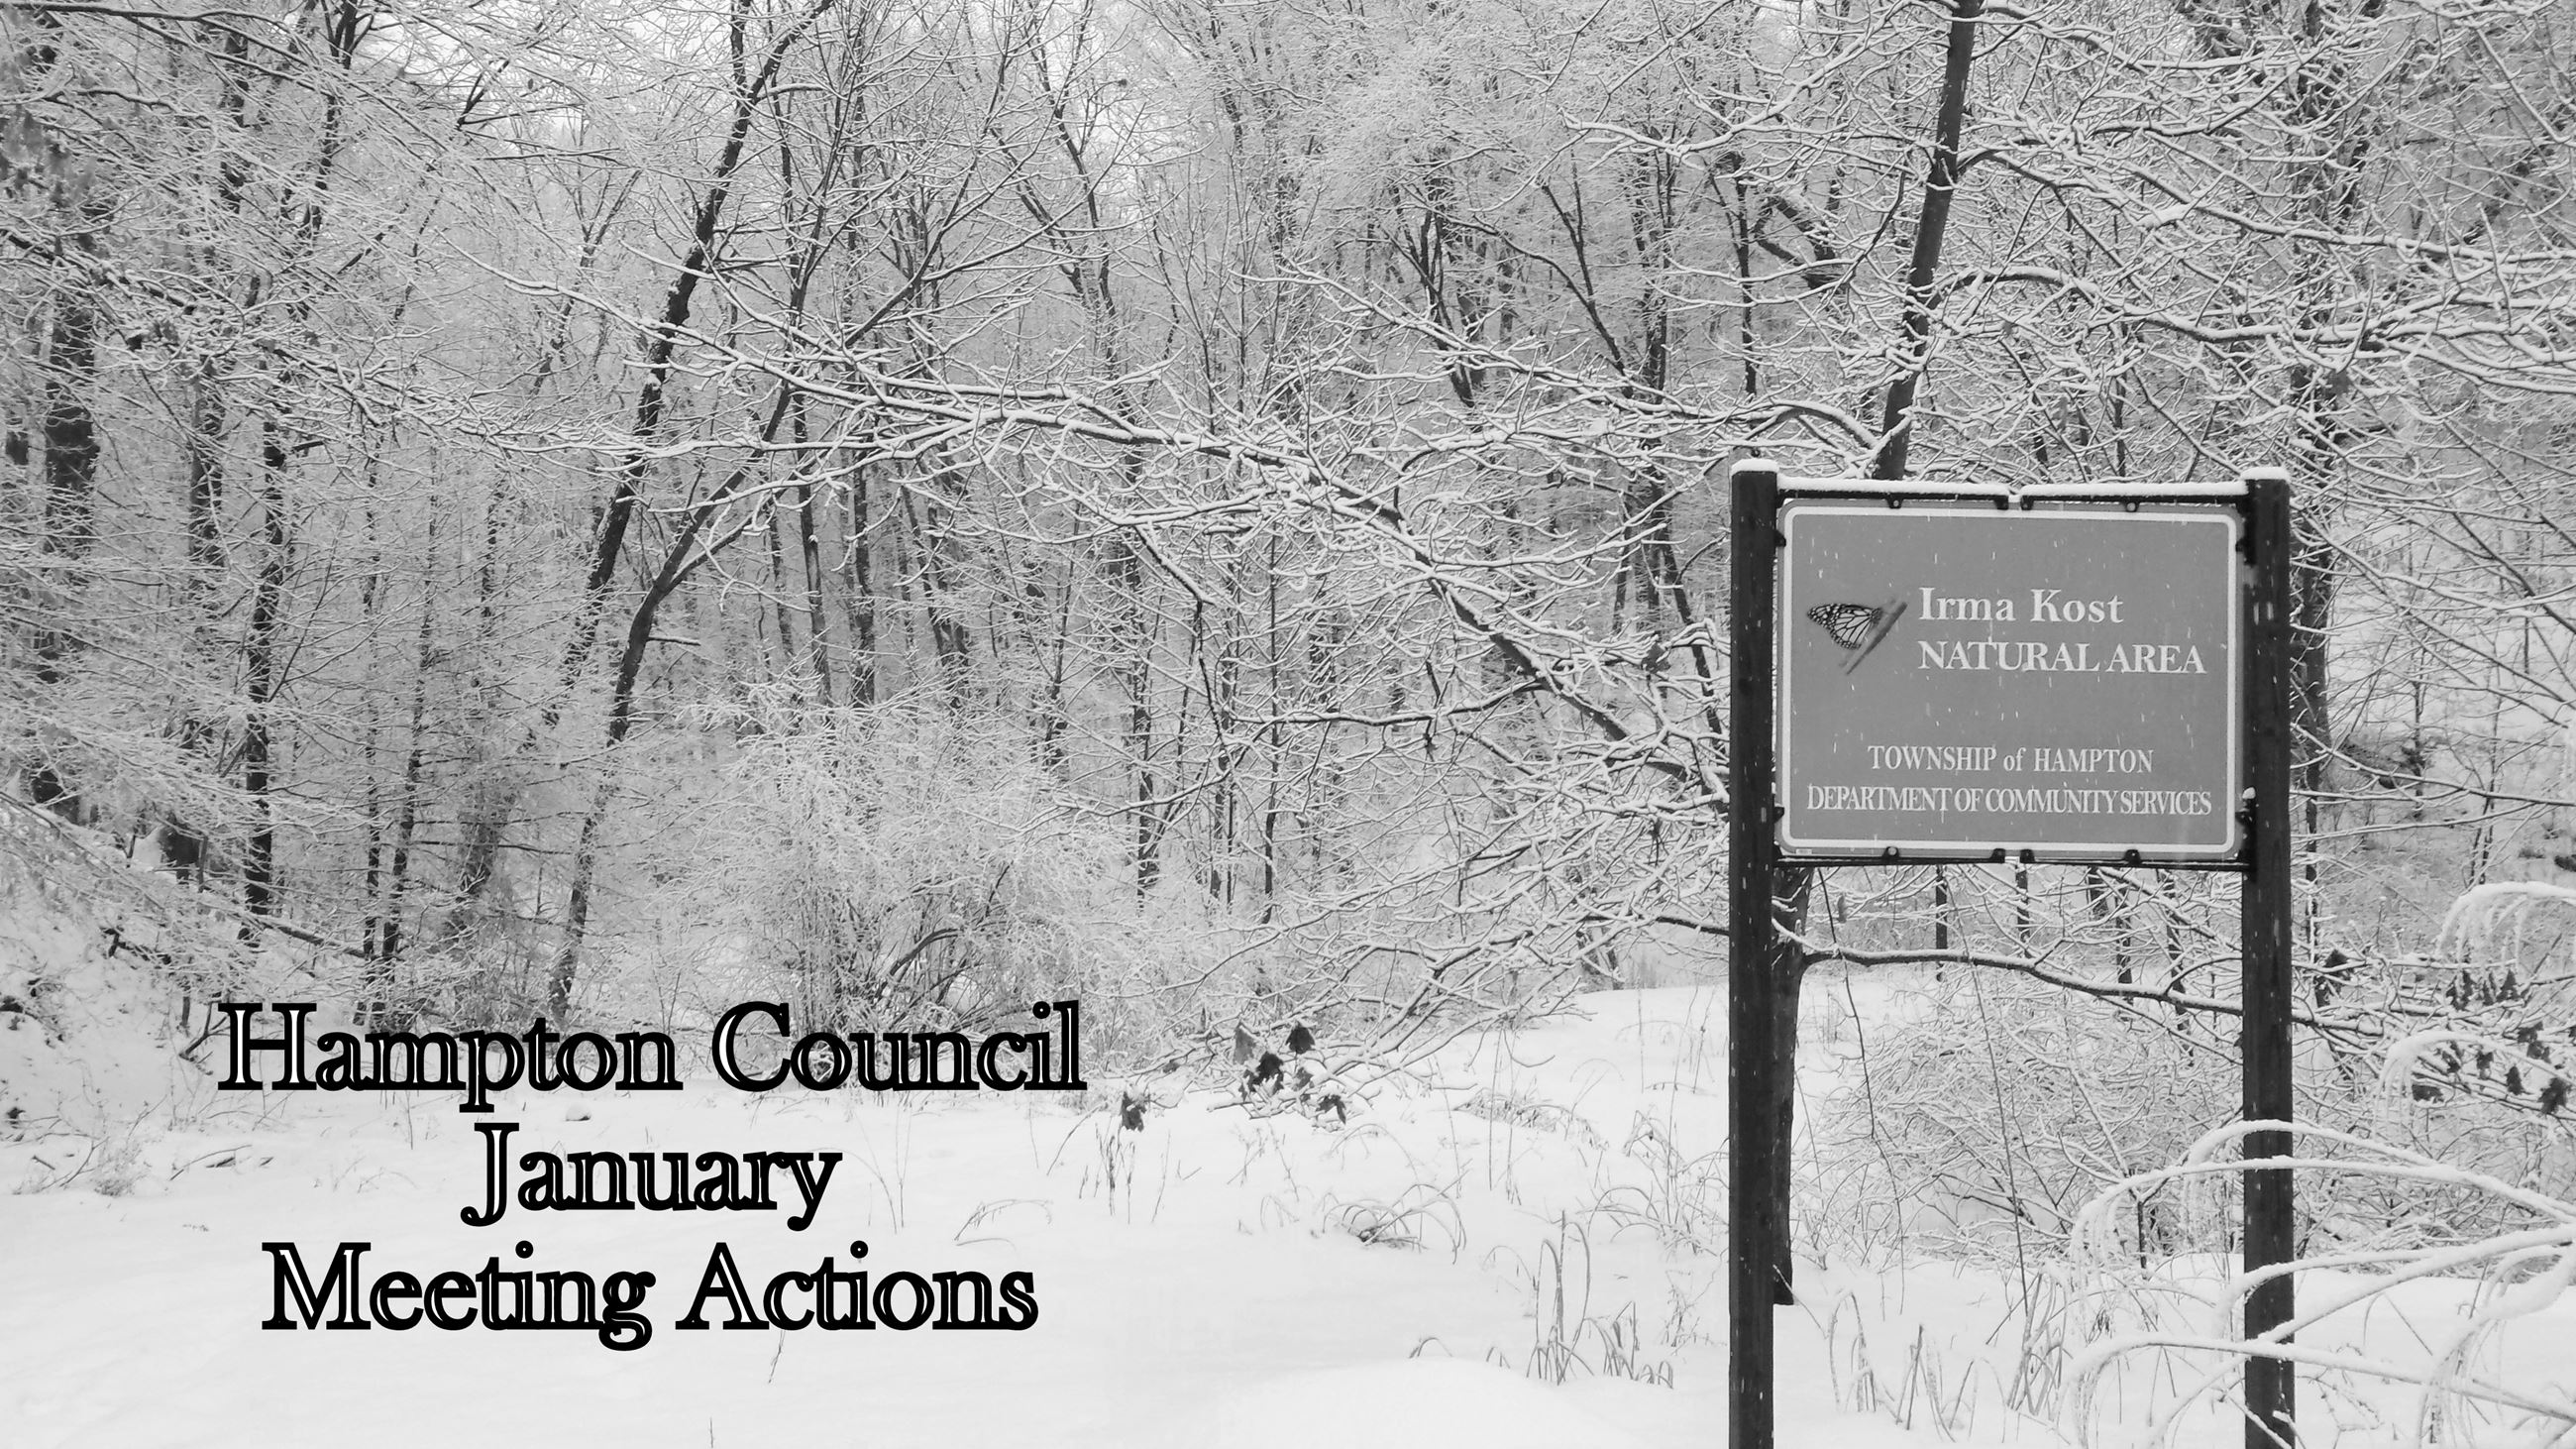 Council January Actions